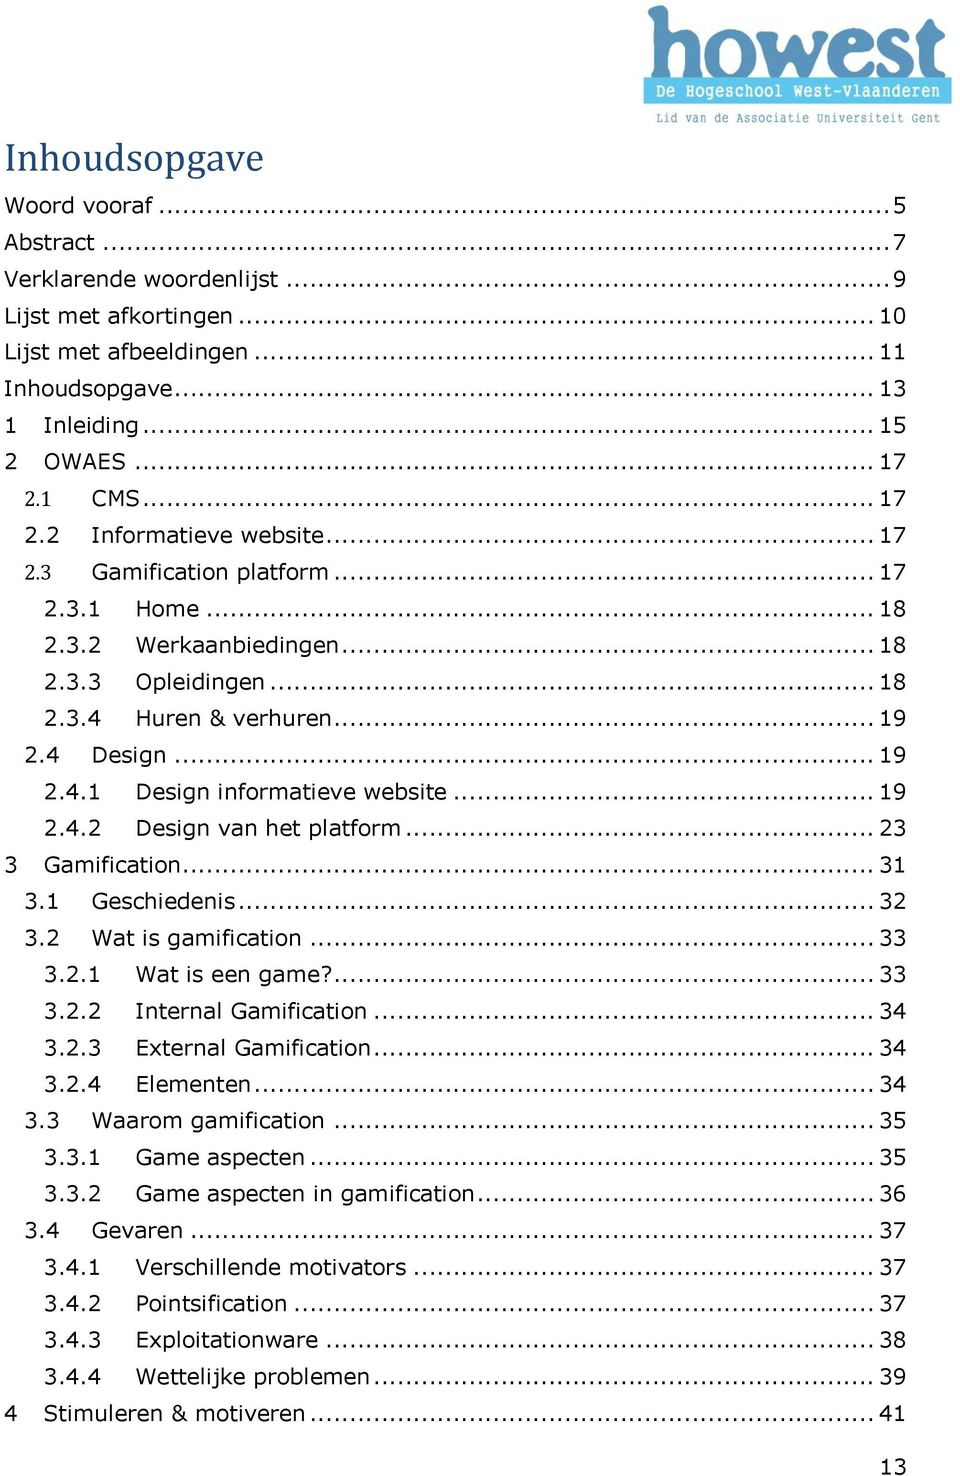 .. 19 2.4.2 Design van het platform... 23 3 Gamification... 31 3.1 Geschiedenis... 32 3.2 Wat is gamification... 33 3.2.1 Wat is een game?... 33 3.2.2 Internal Gamification... 34 3.2.3 External Gamification.